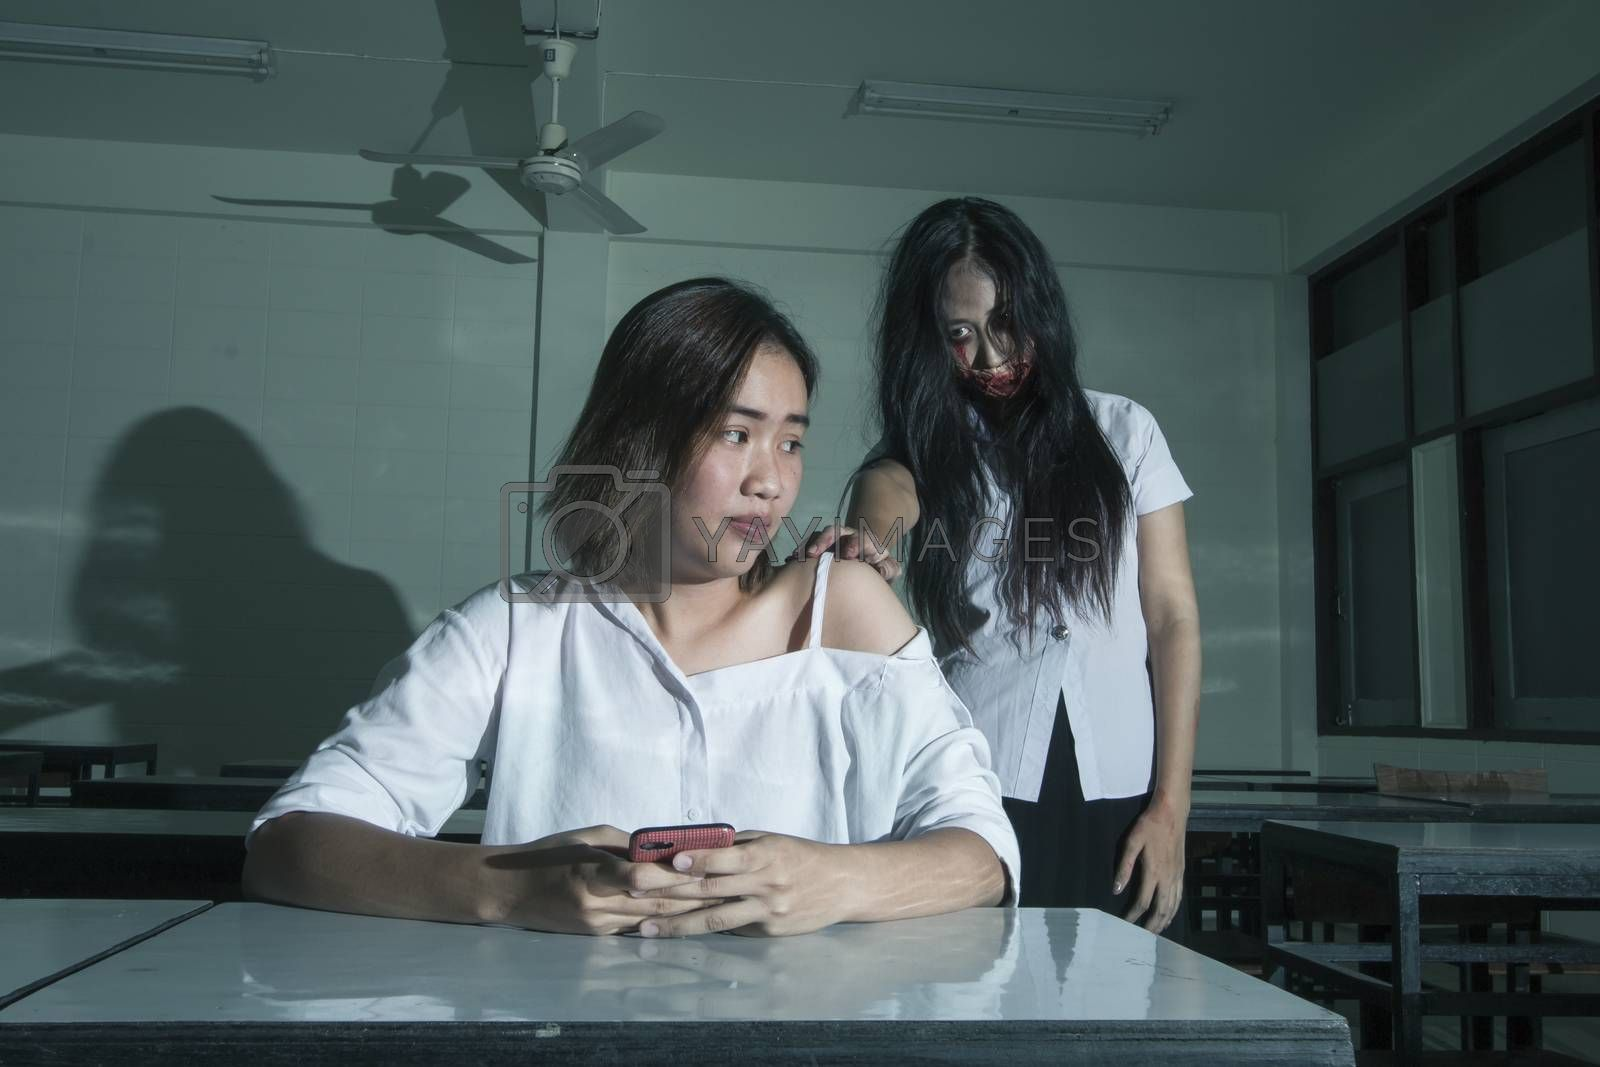 Ghost university girl with scary girl